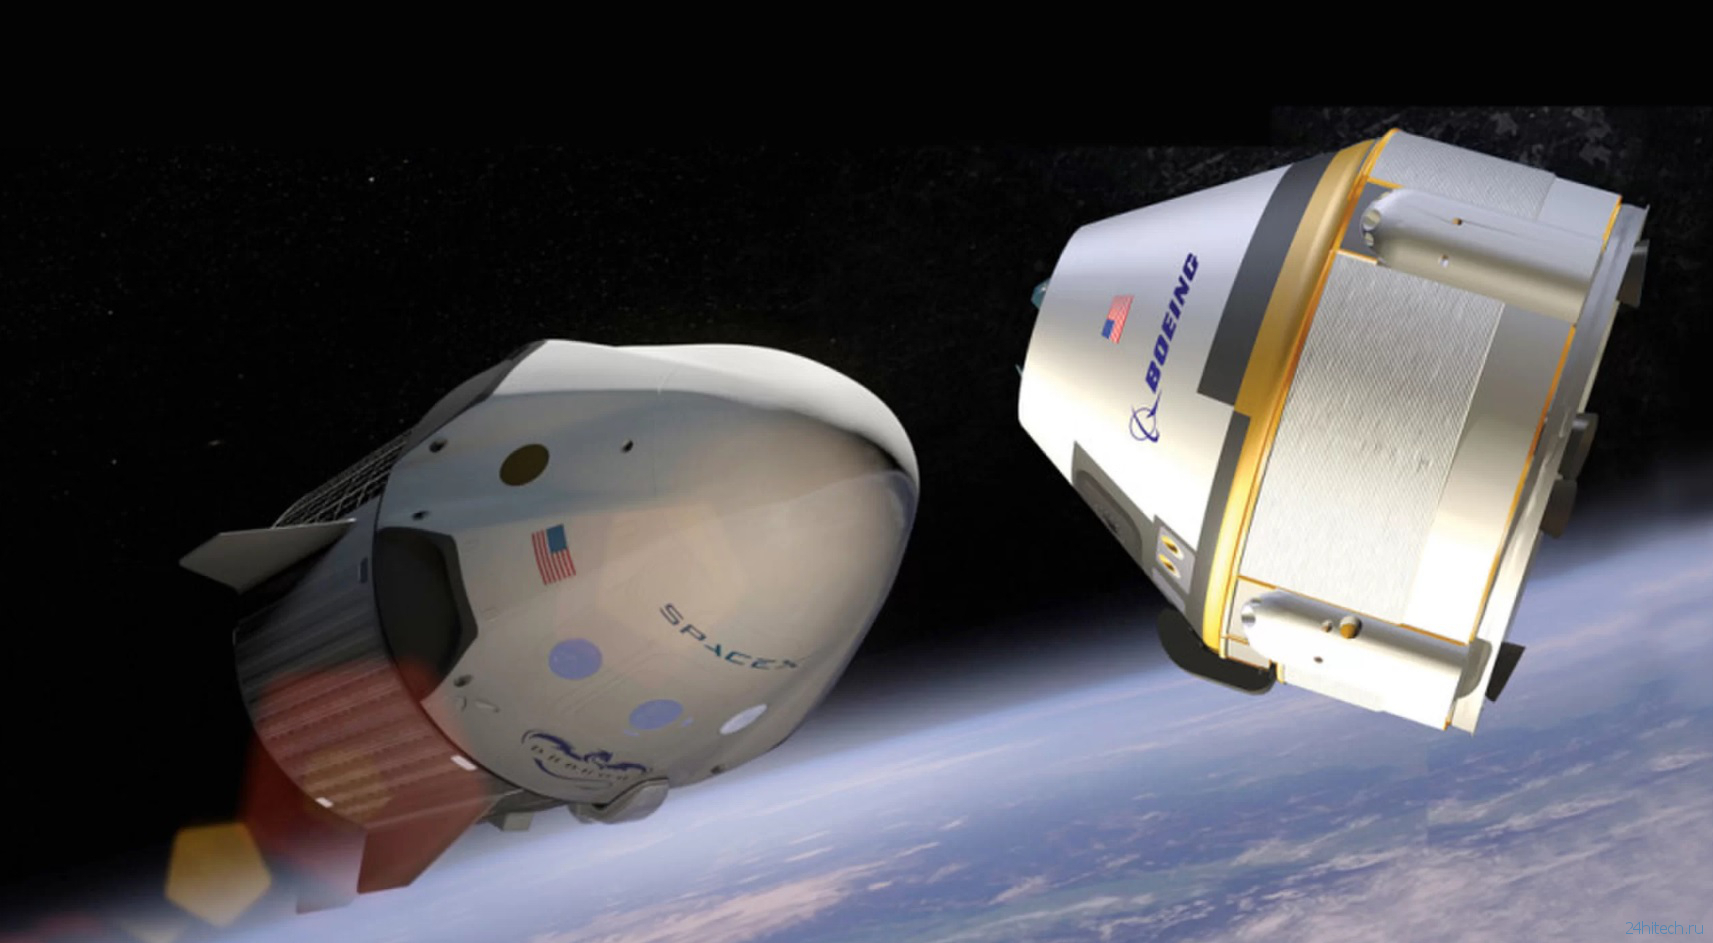 Design flaws manned spacecraft SpaceX and Boeing could deprive NASA of space